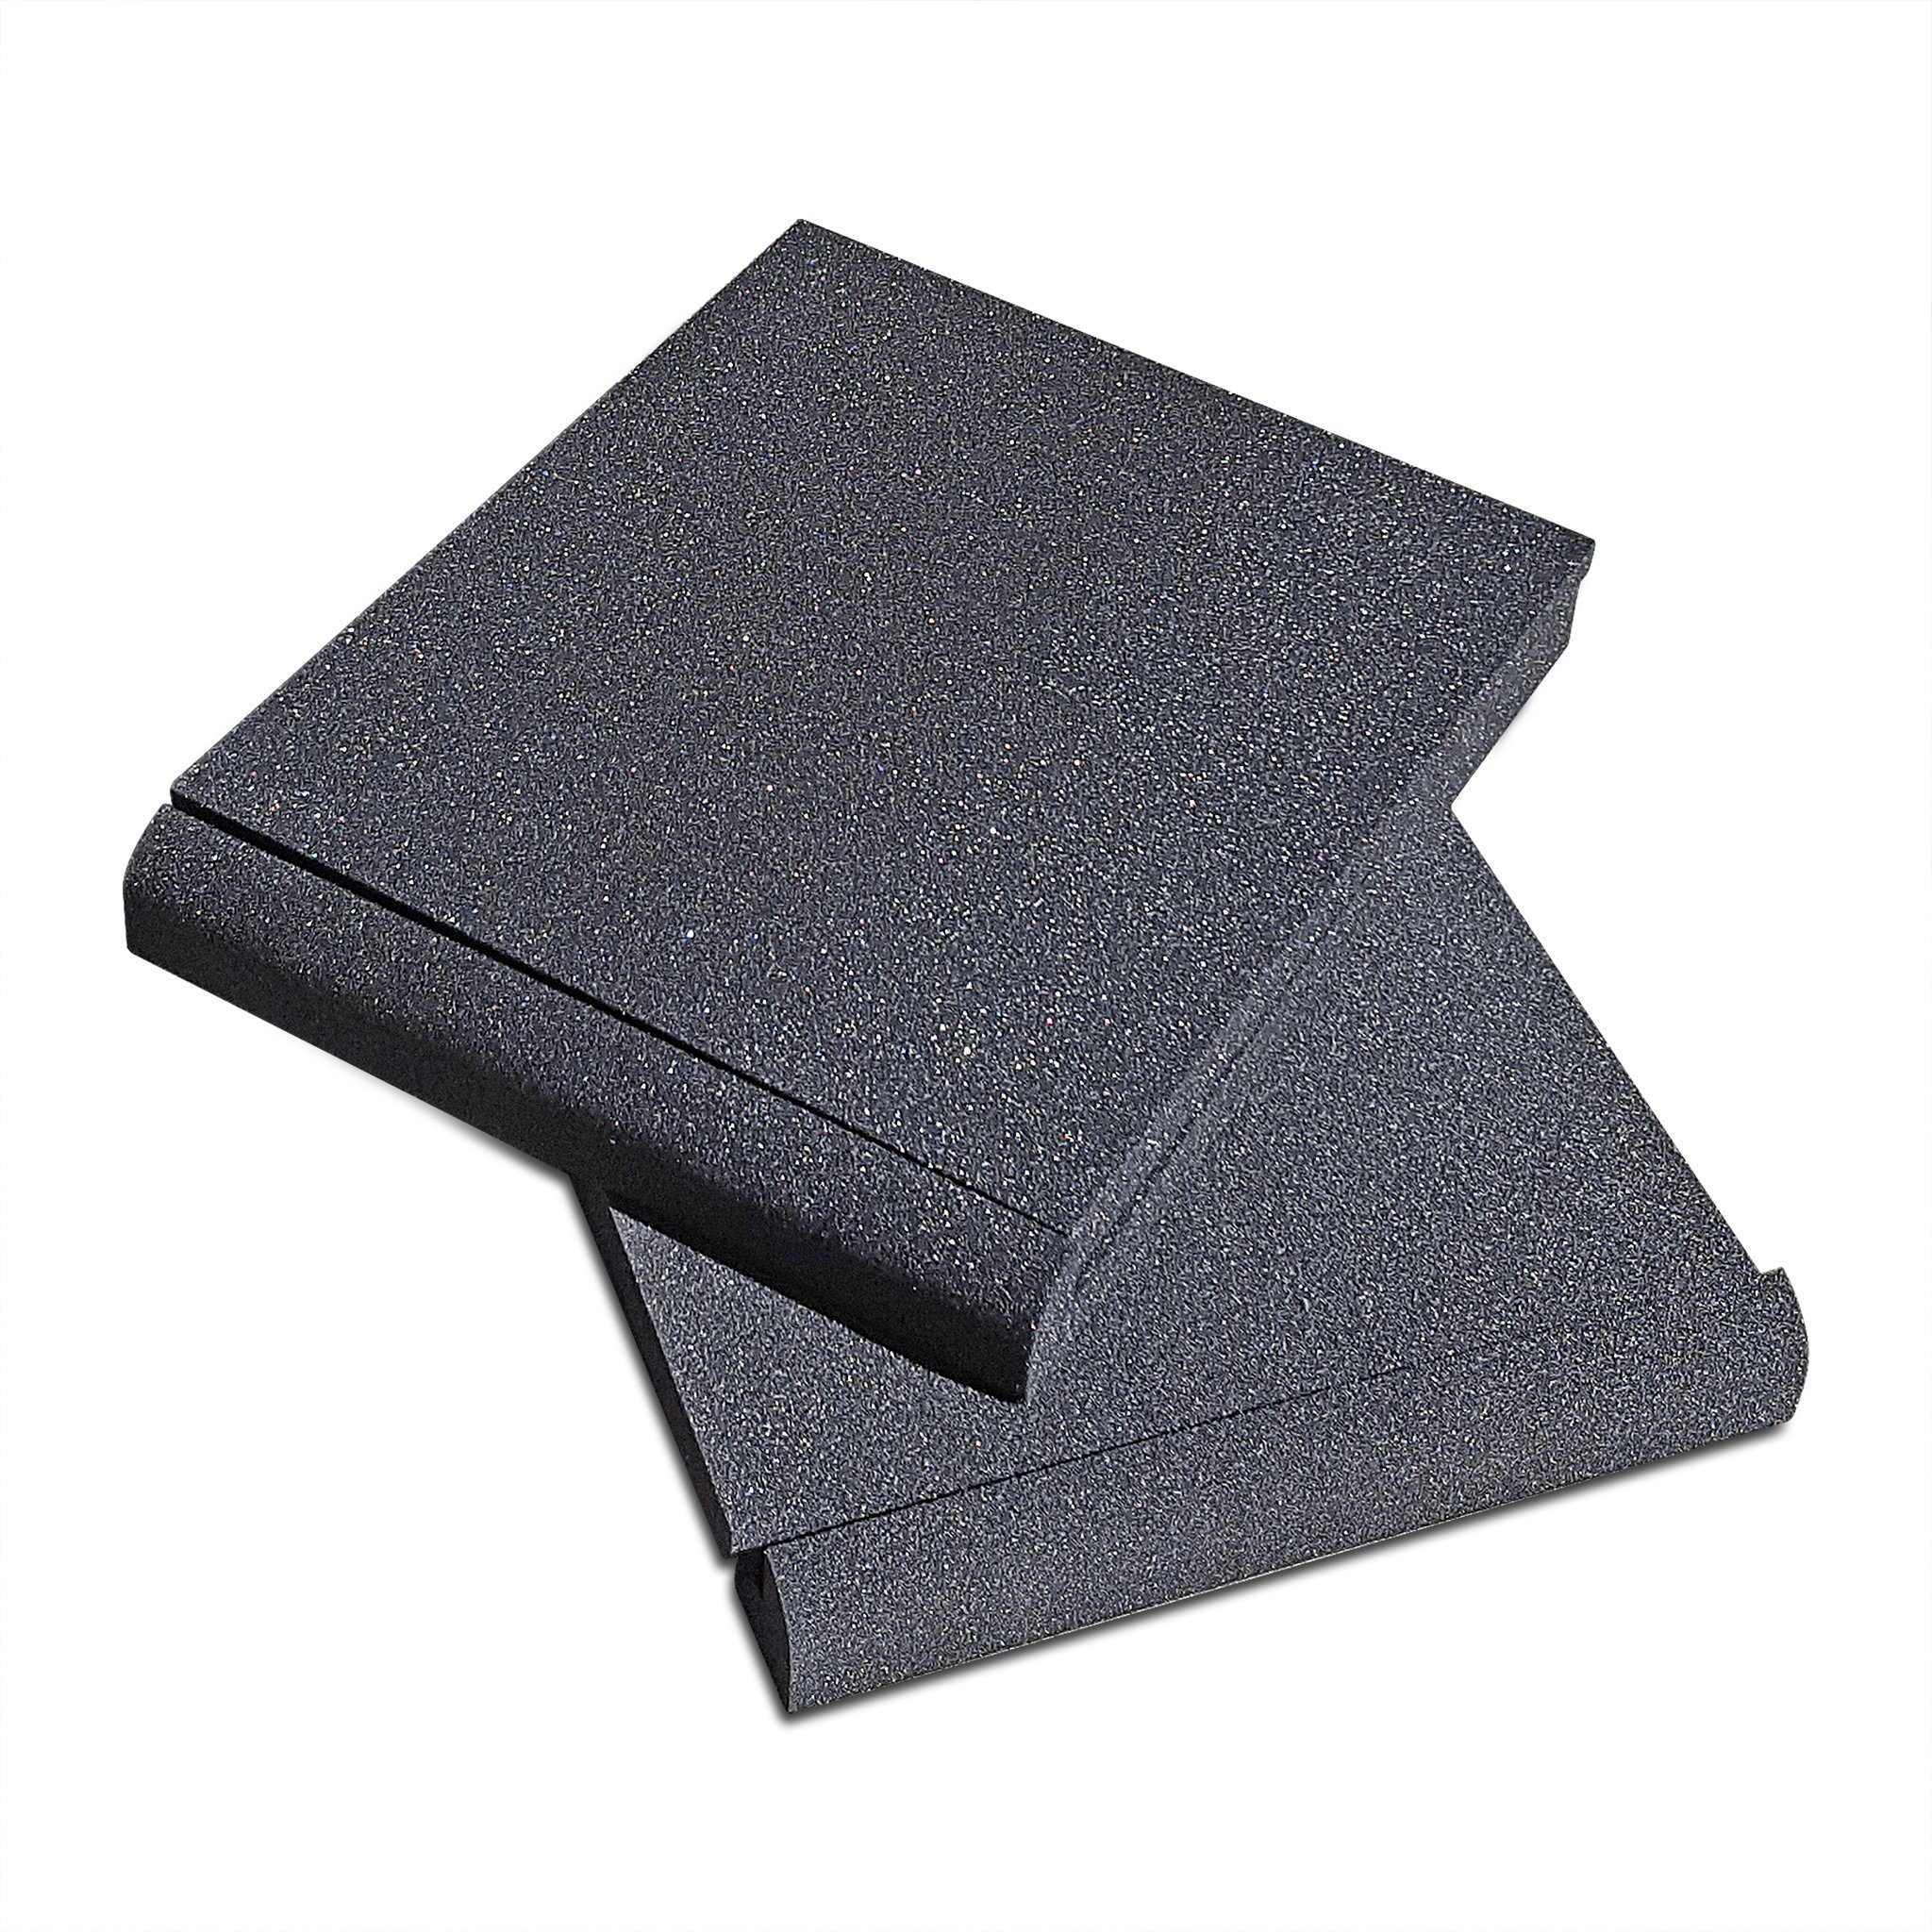 Studio Solutions High Density Studio Monitor Isolation Pads Pair For 5 Inch Monitors by Studio Solutions